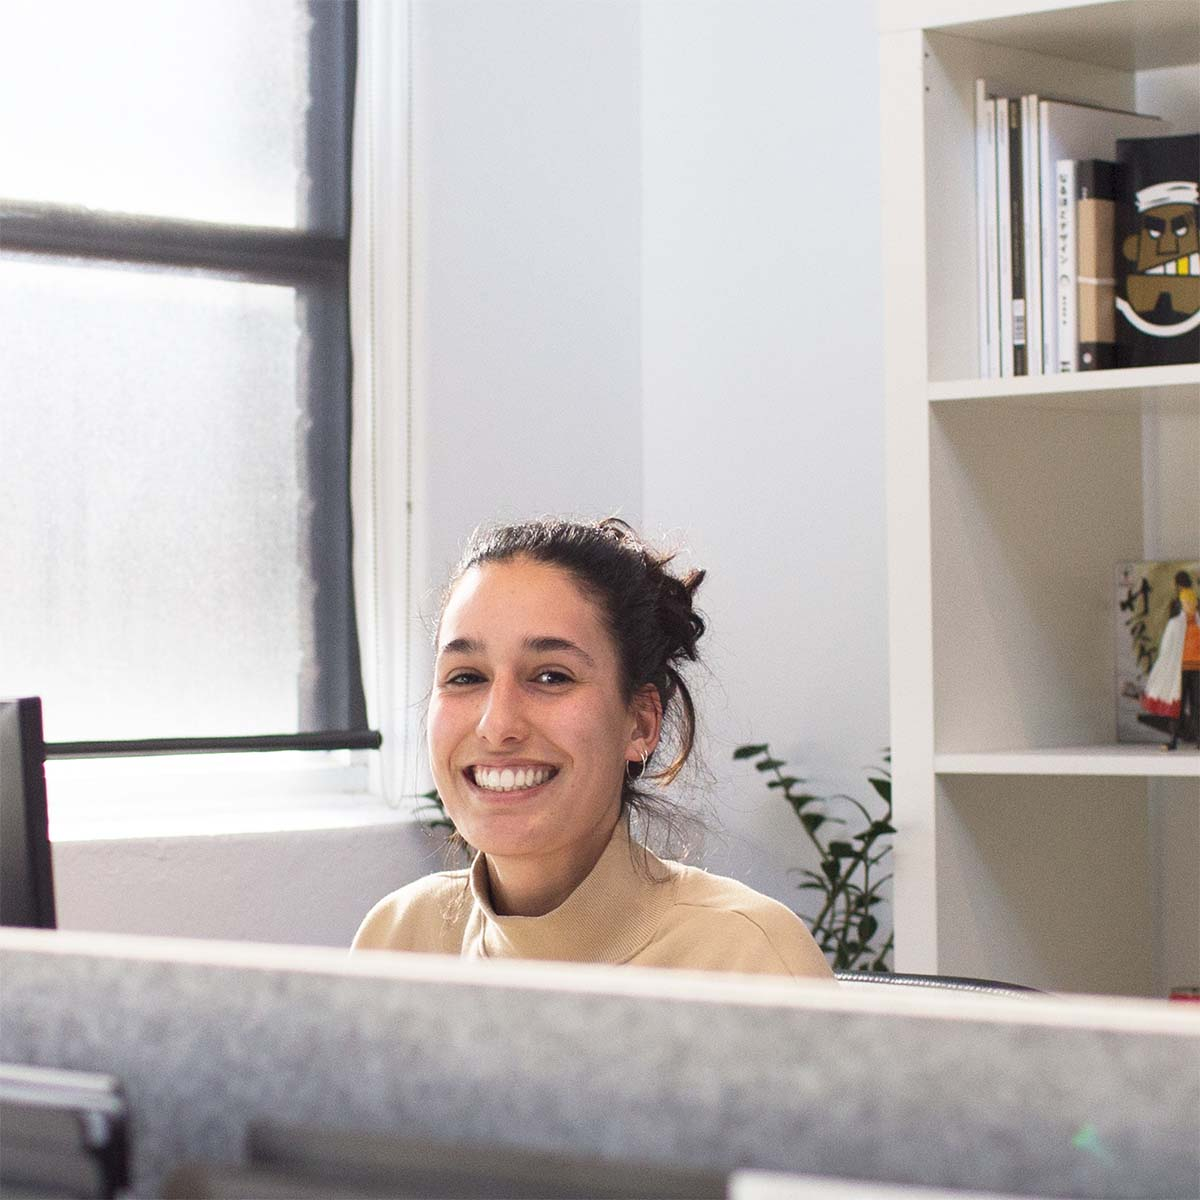 Photograph of a smiling worker in an office cubicle